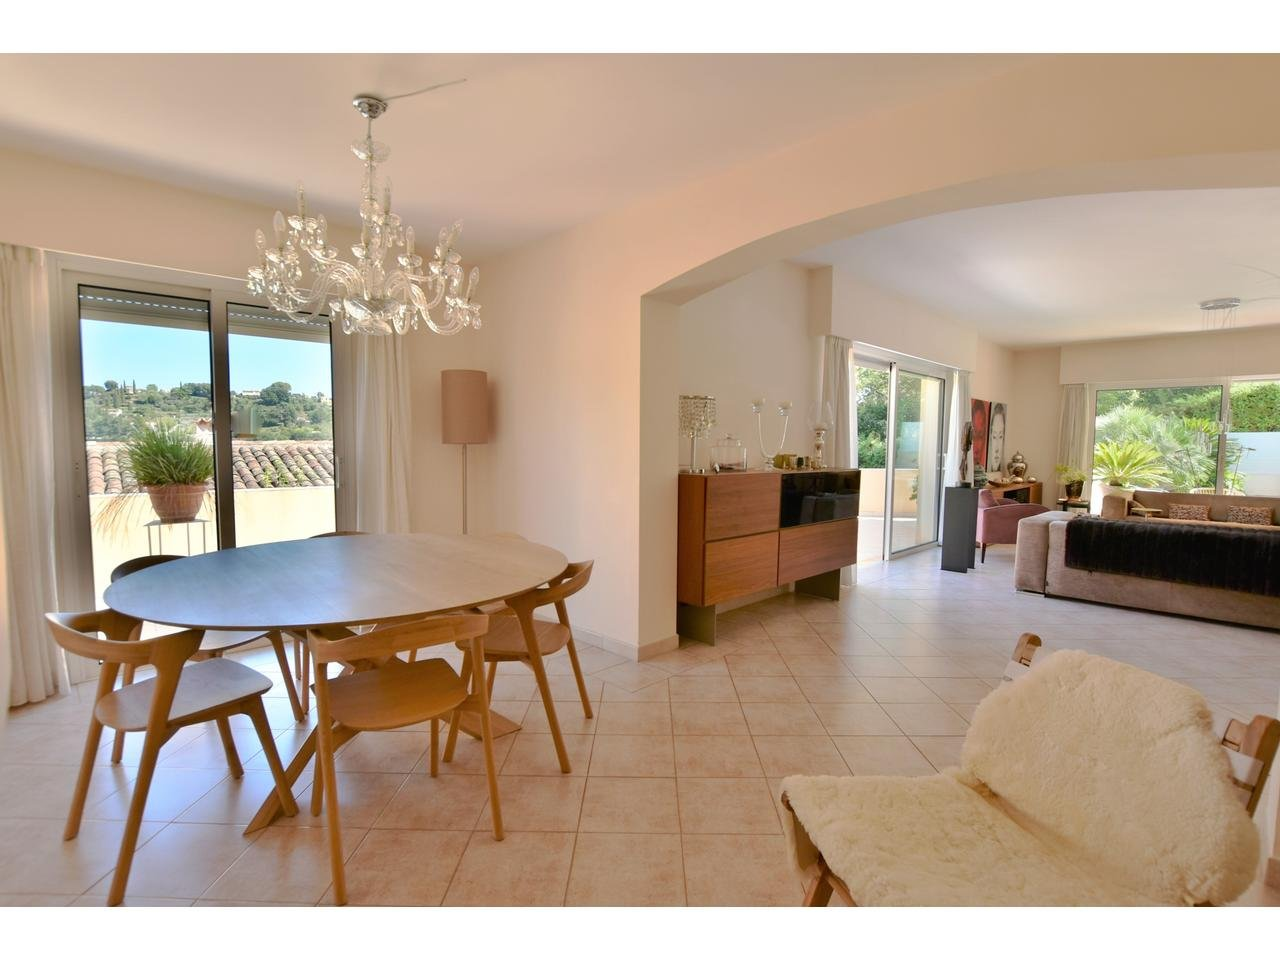 Maison  6 Rooms 220m2  for sale  1 095 000 €